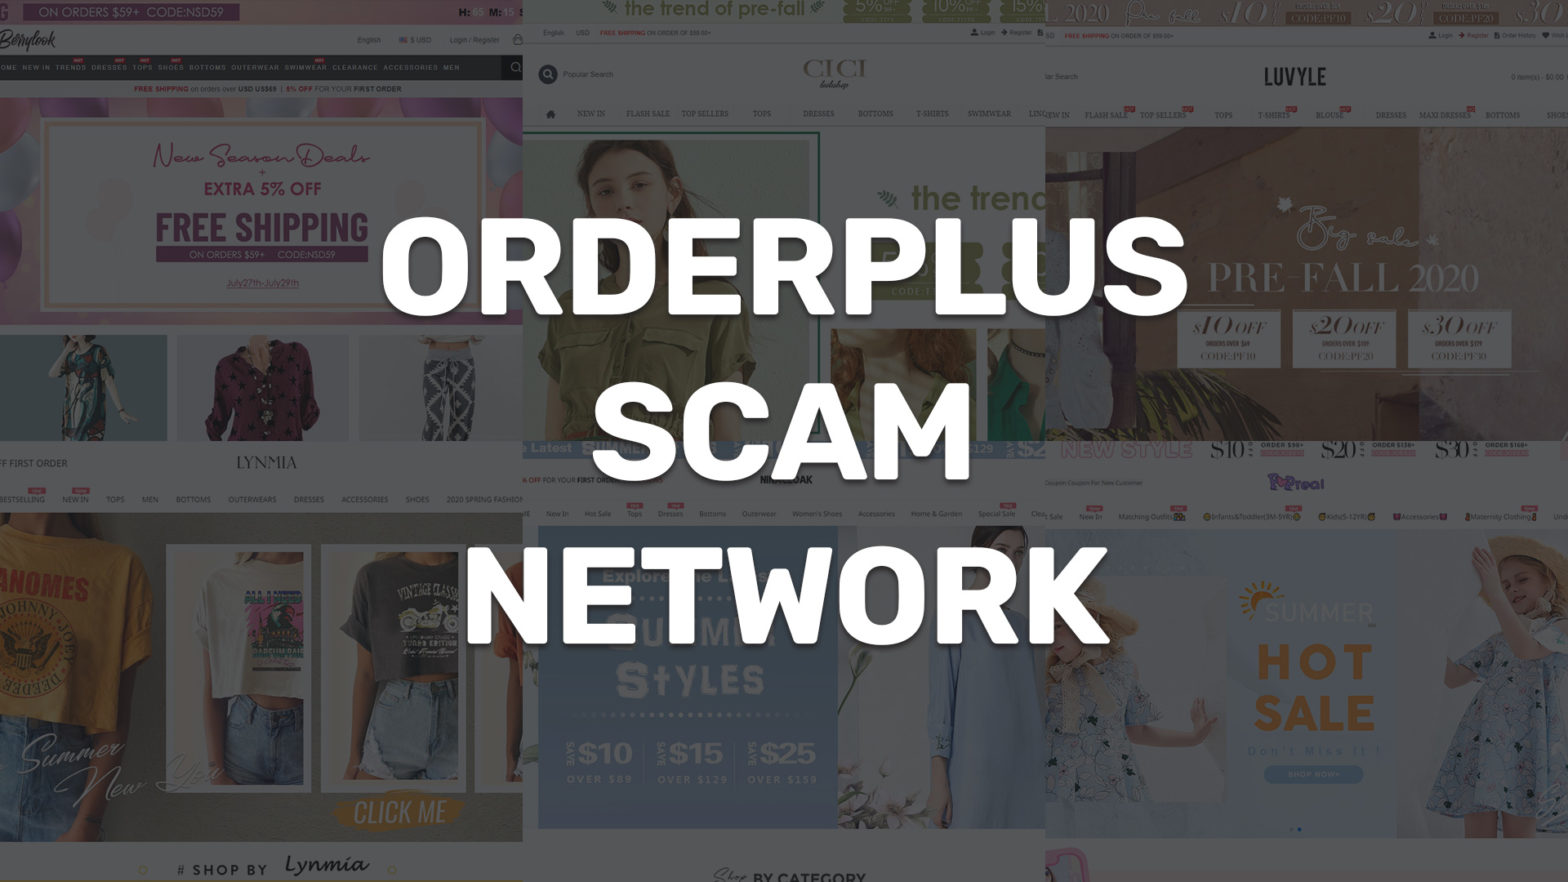 orderplus scam network